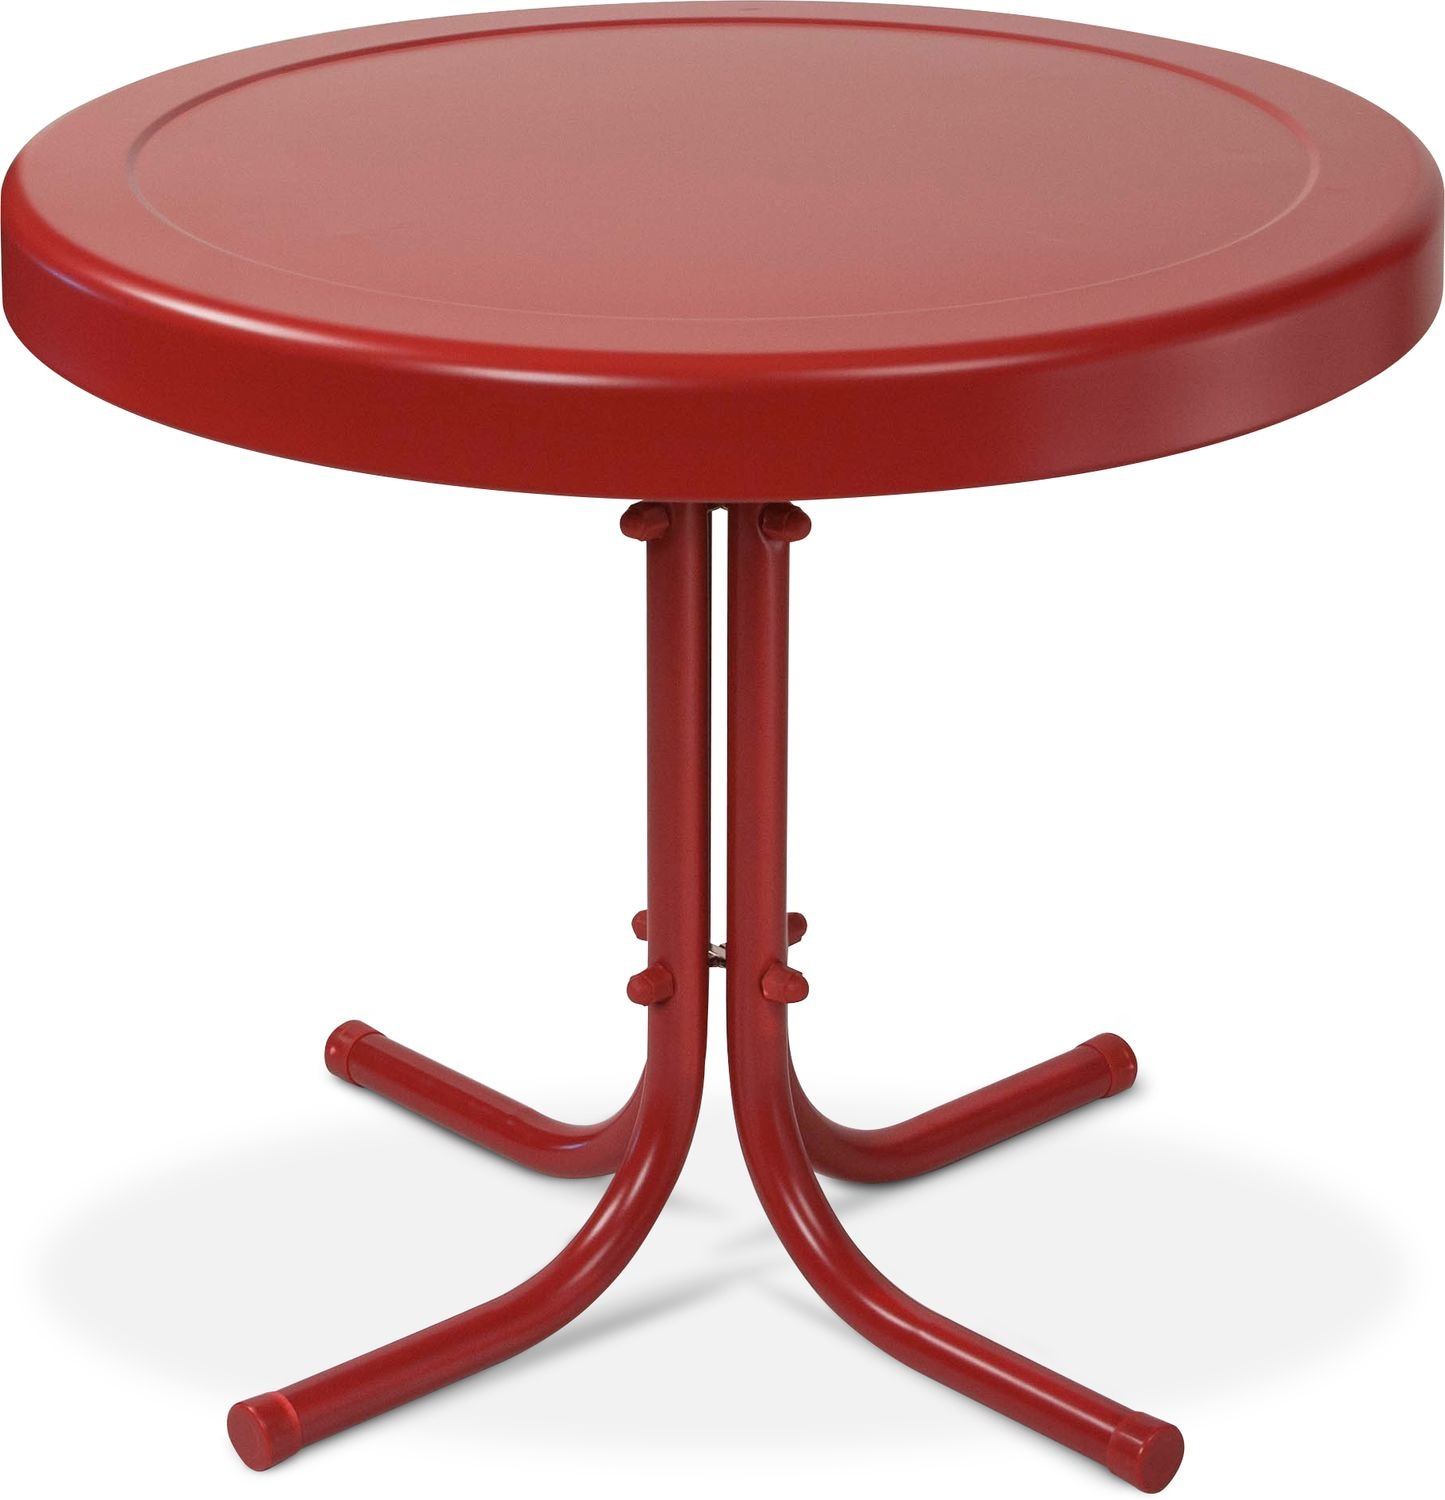 apollo outdoor side table red american signature furniture accent click change free standing patio umbrella diy dining target chairside small foldable coffee kenzie ikea kids